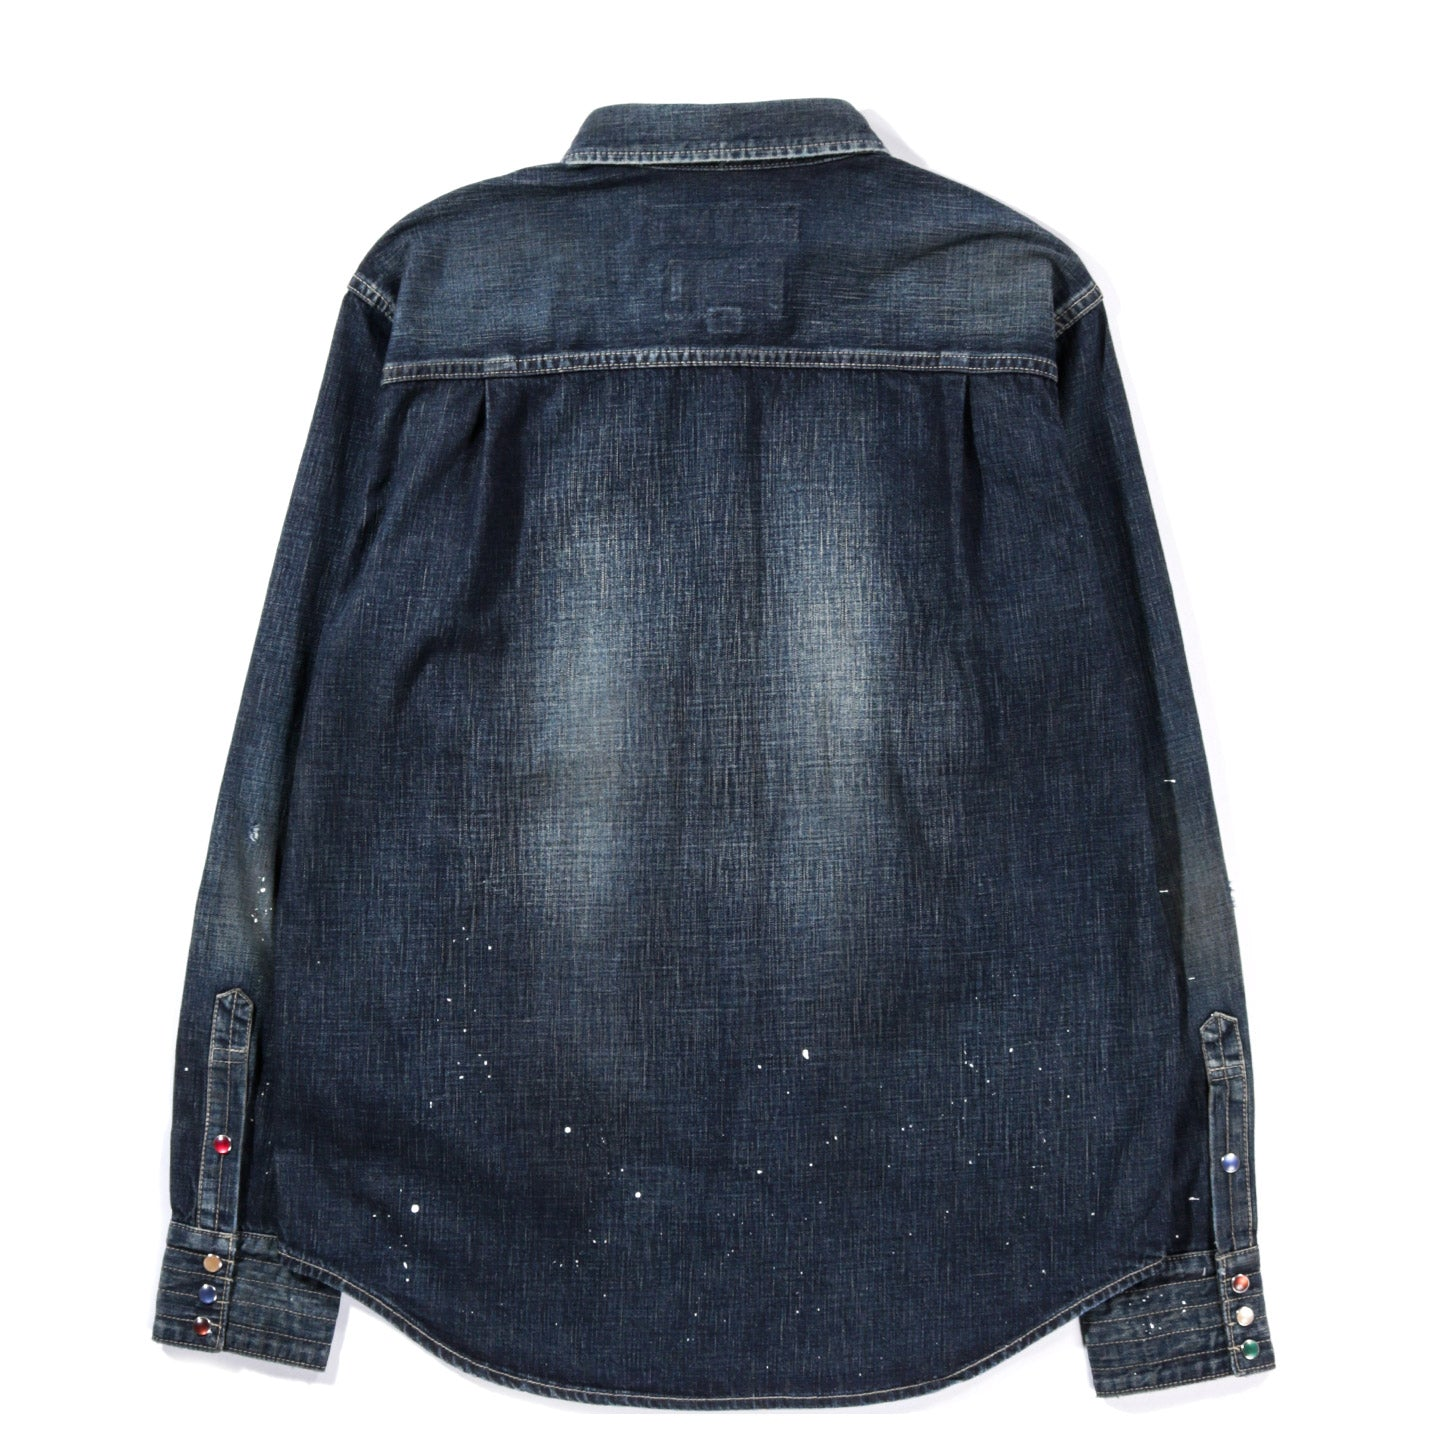 NEIGHBORHOOD SAVAGE DENIM WESTERN SHIRT INDIGO